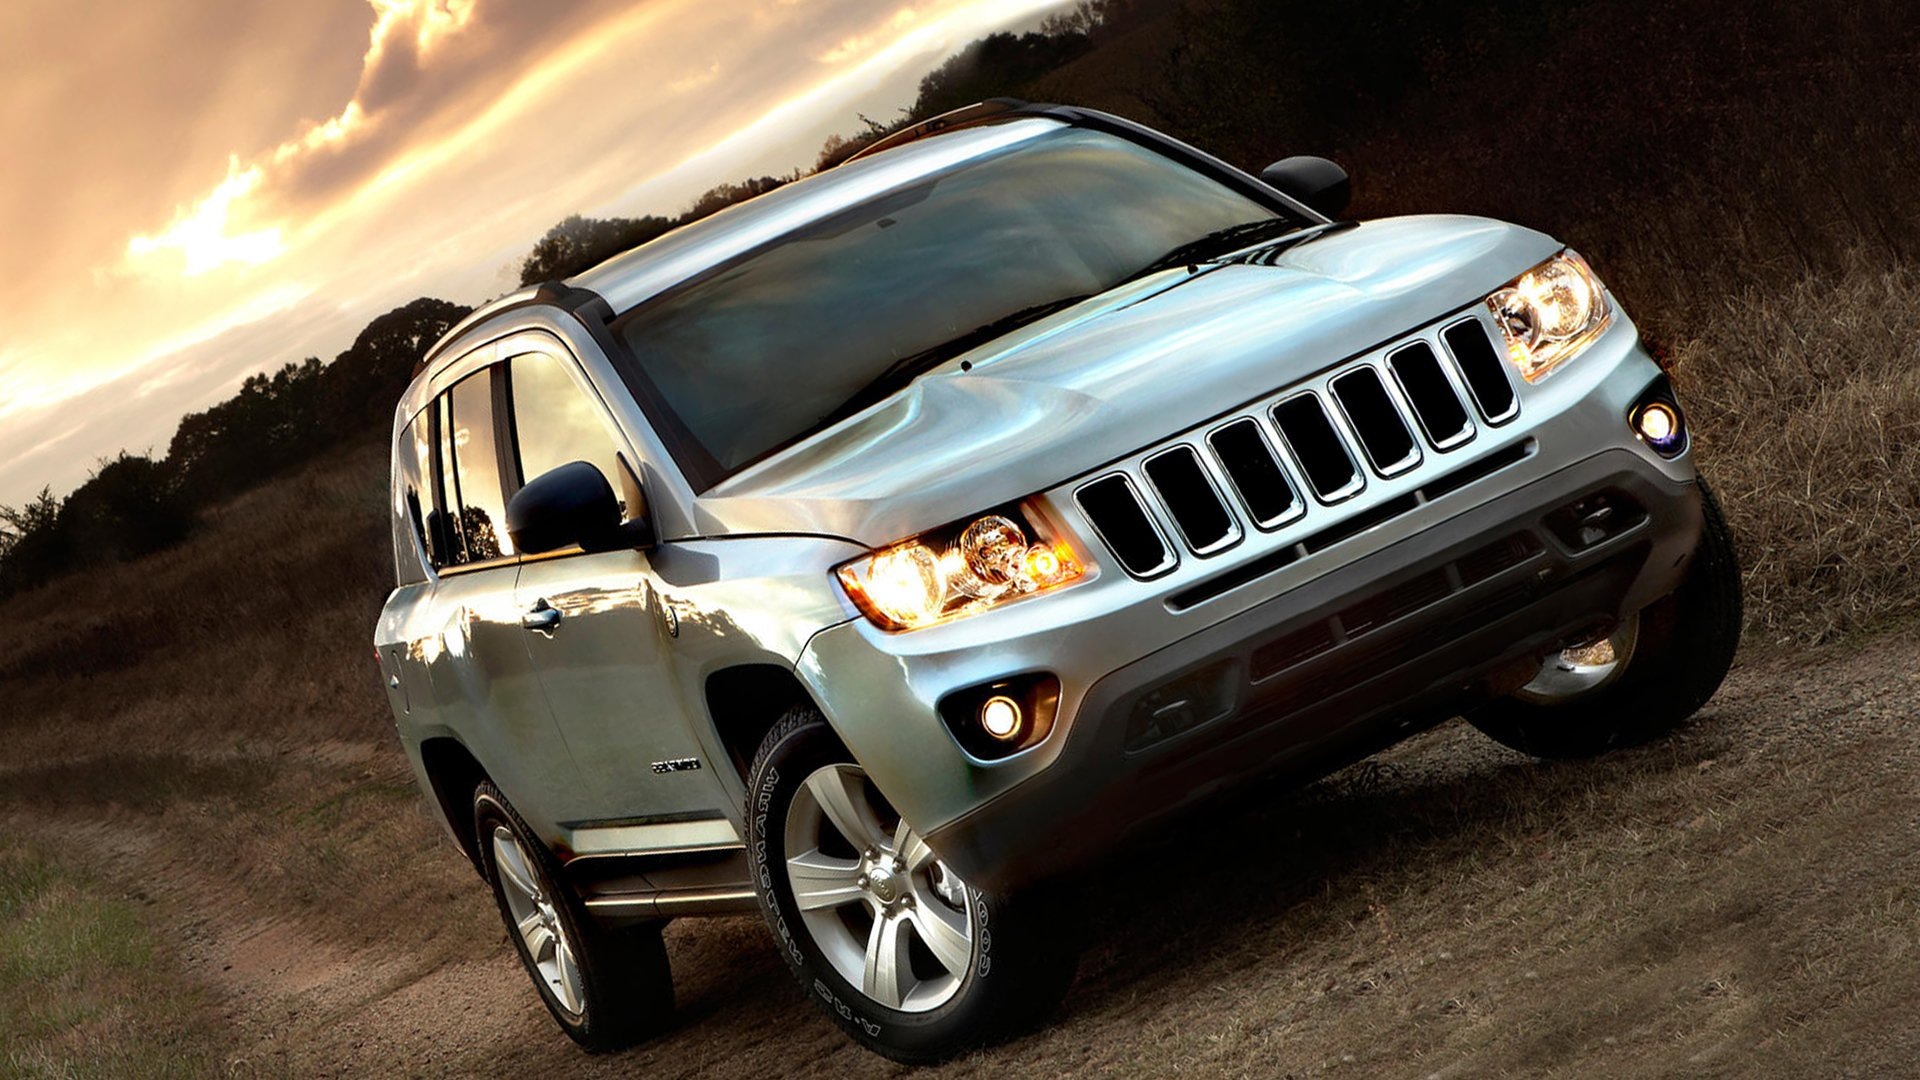 New 2019 Jeep Compass Release Date